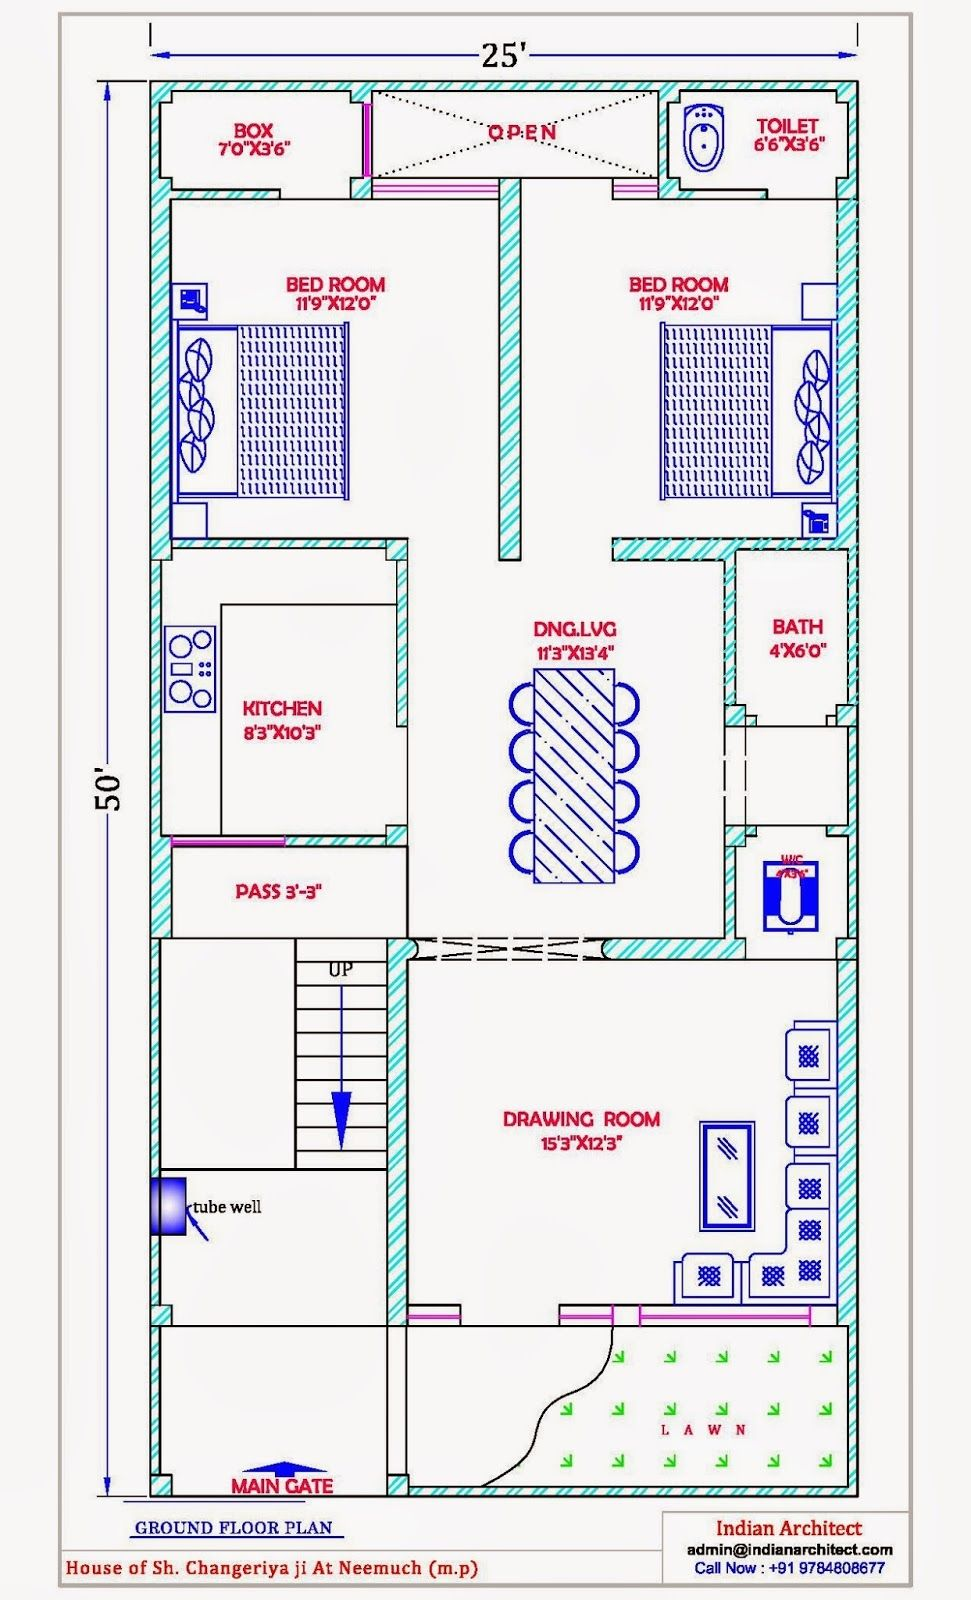 House Plan 25 X 50 Luxury 28 House Map Design 25 X 50 Of House Plan 25 X 50 Awesome Alijdeveloper Blog Floor Plan Home Map Design 2bhk House Plan House Map